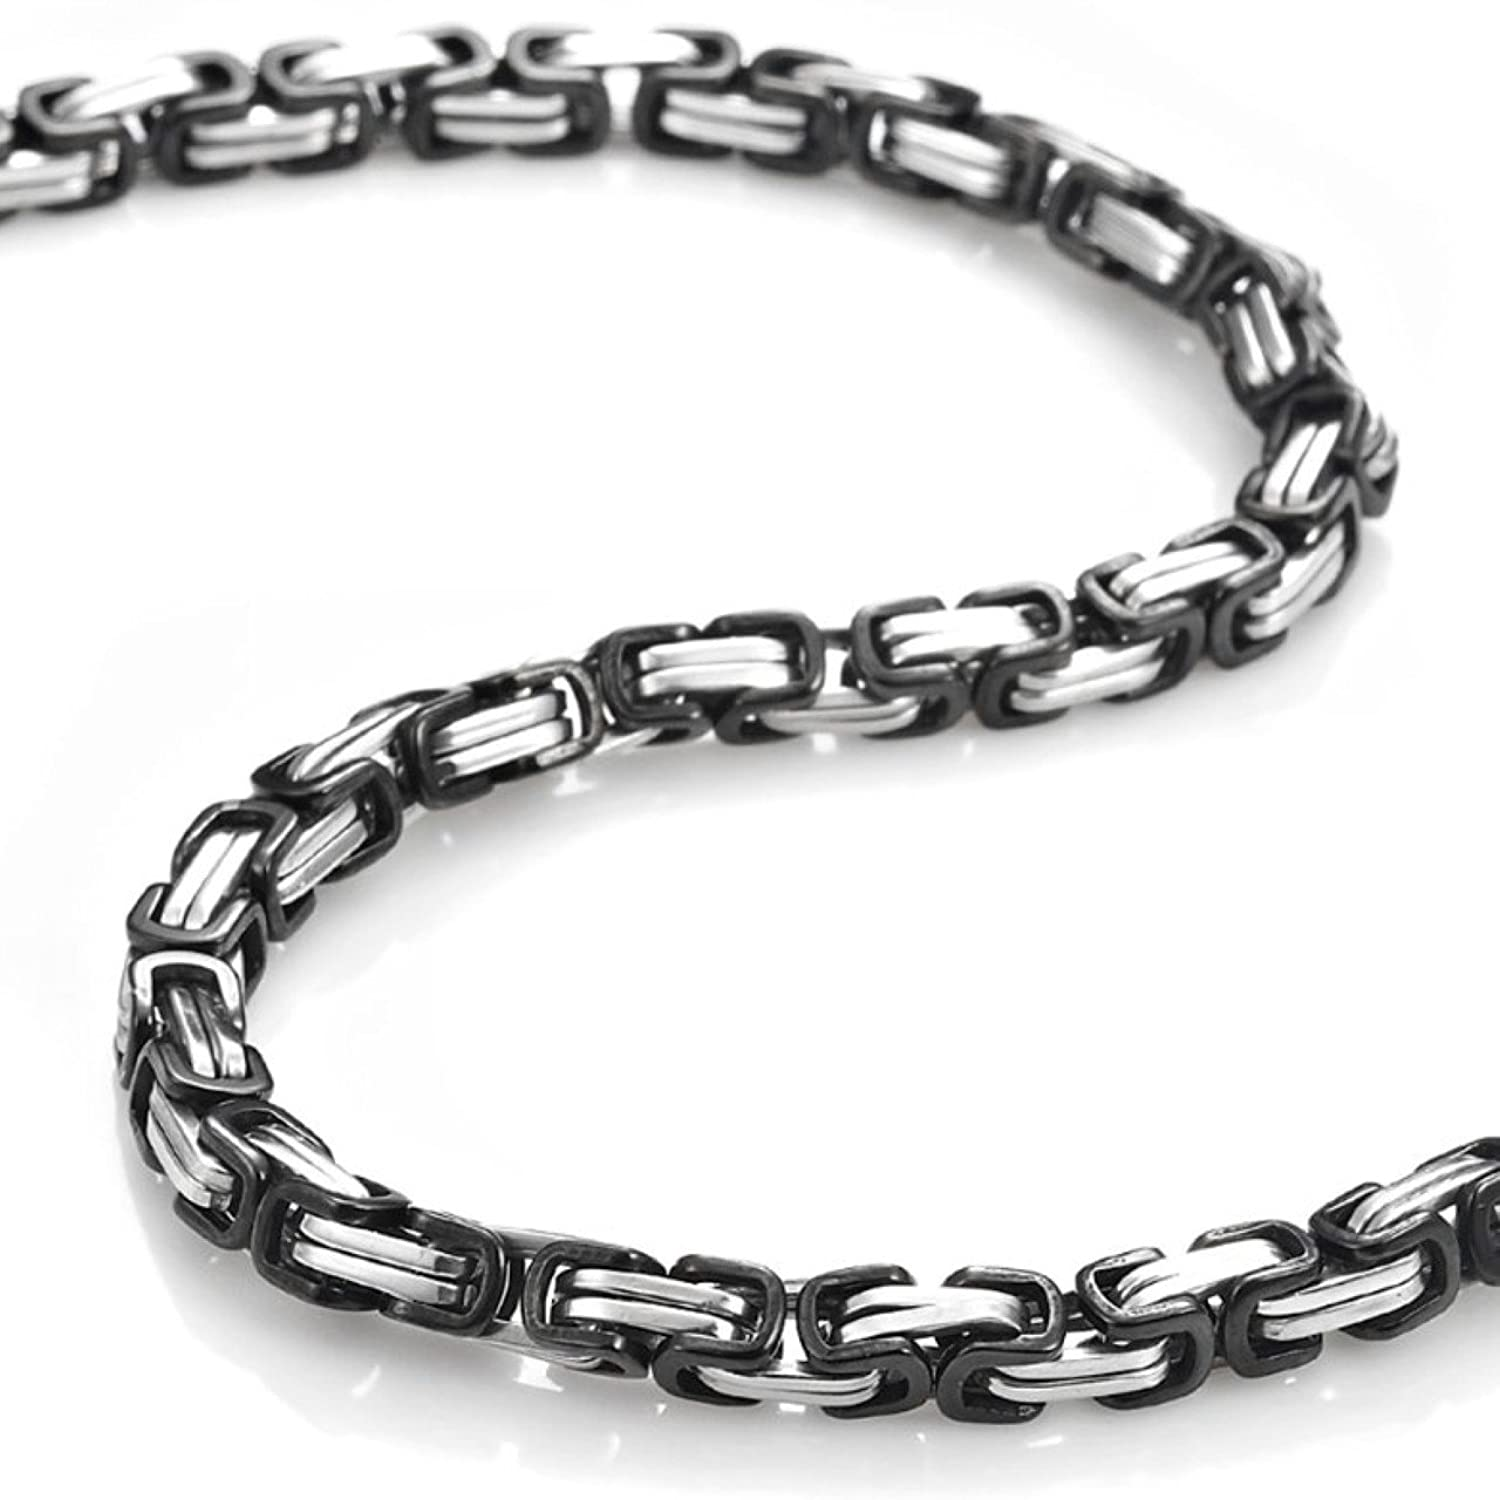 inch designs silver snake chain smooth steel polished stainless round loralyn product necklace men for mens